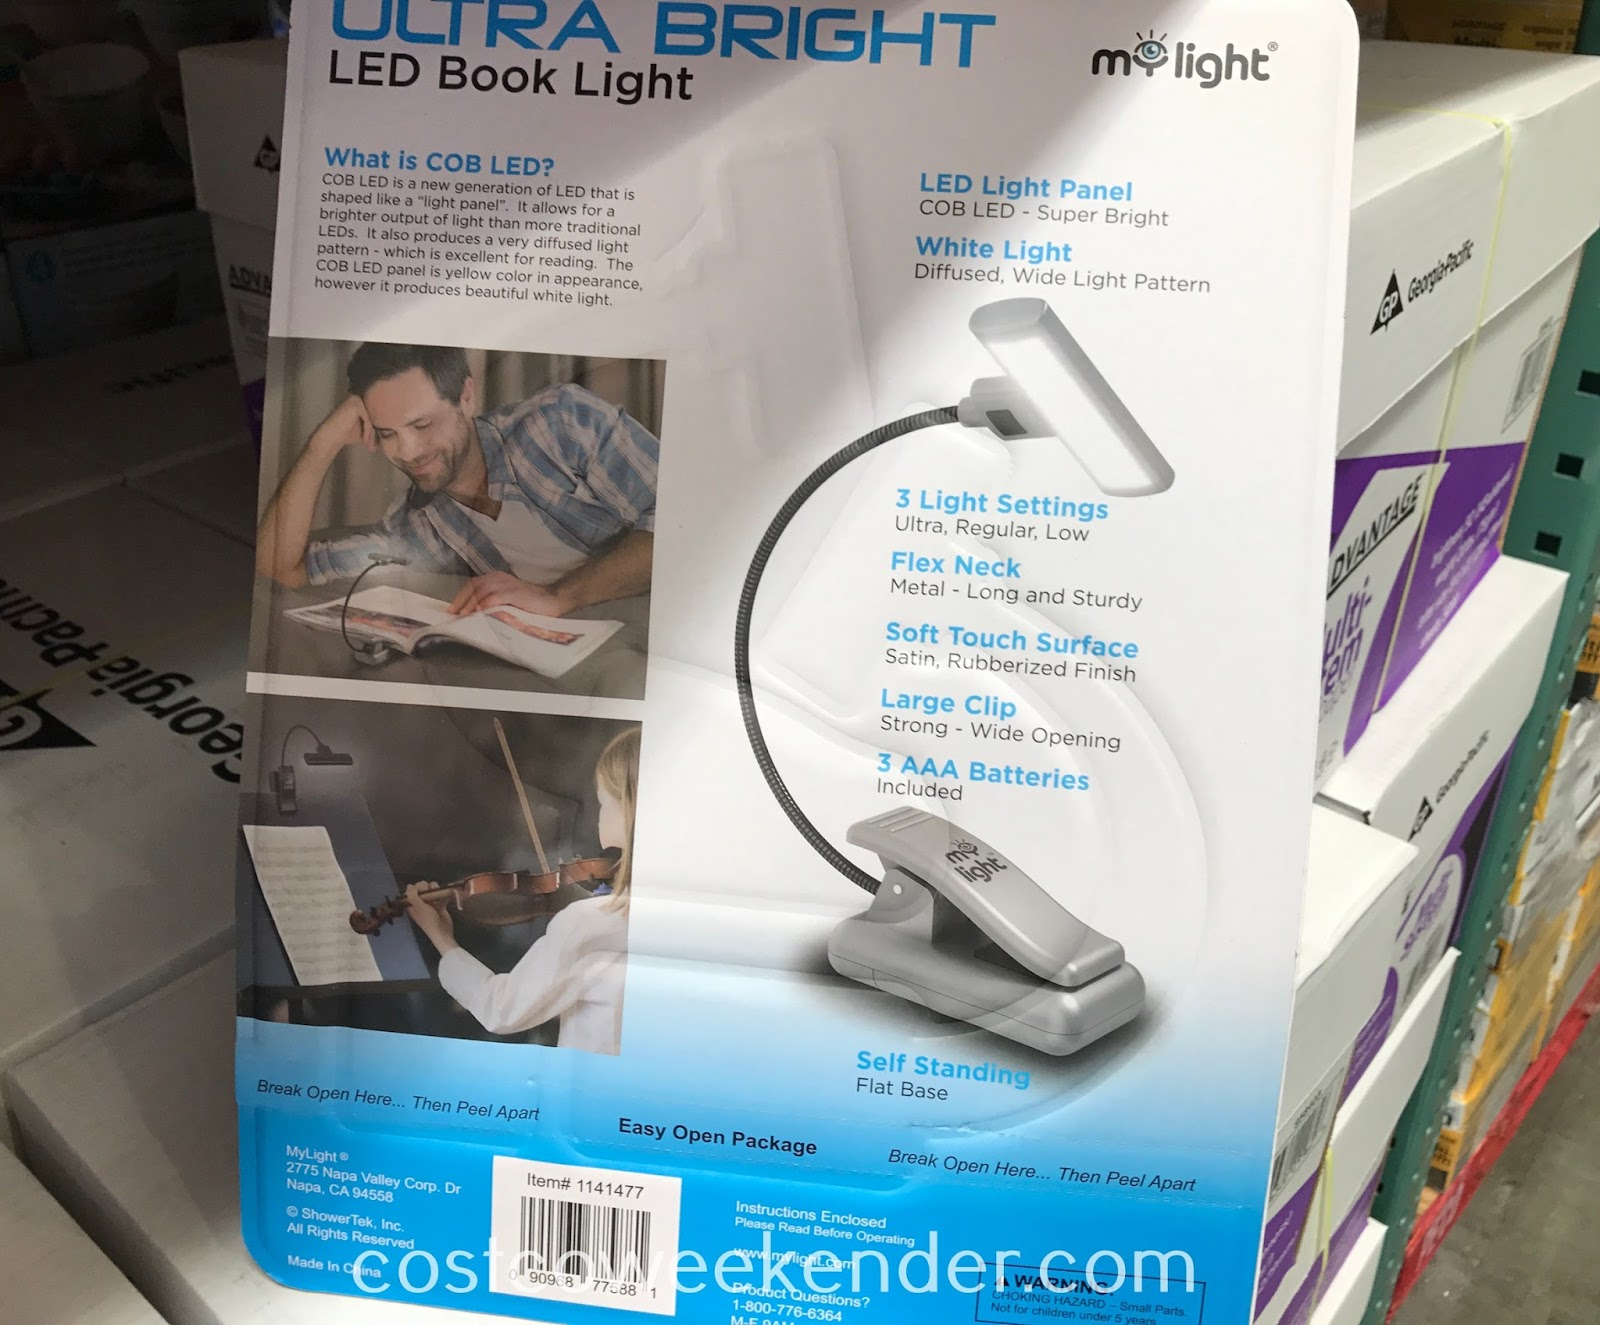 Costco 1141477 - MyLight Ultra Bright LED Book Light: save your eyes and get proper lighting when reading